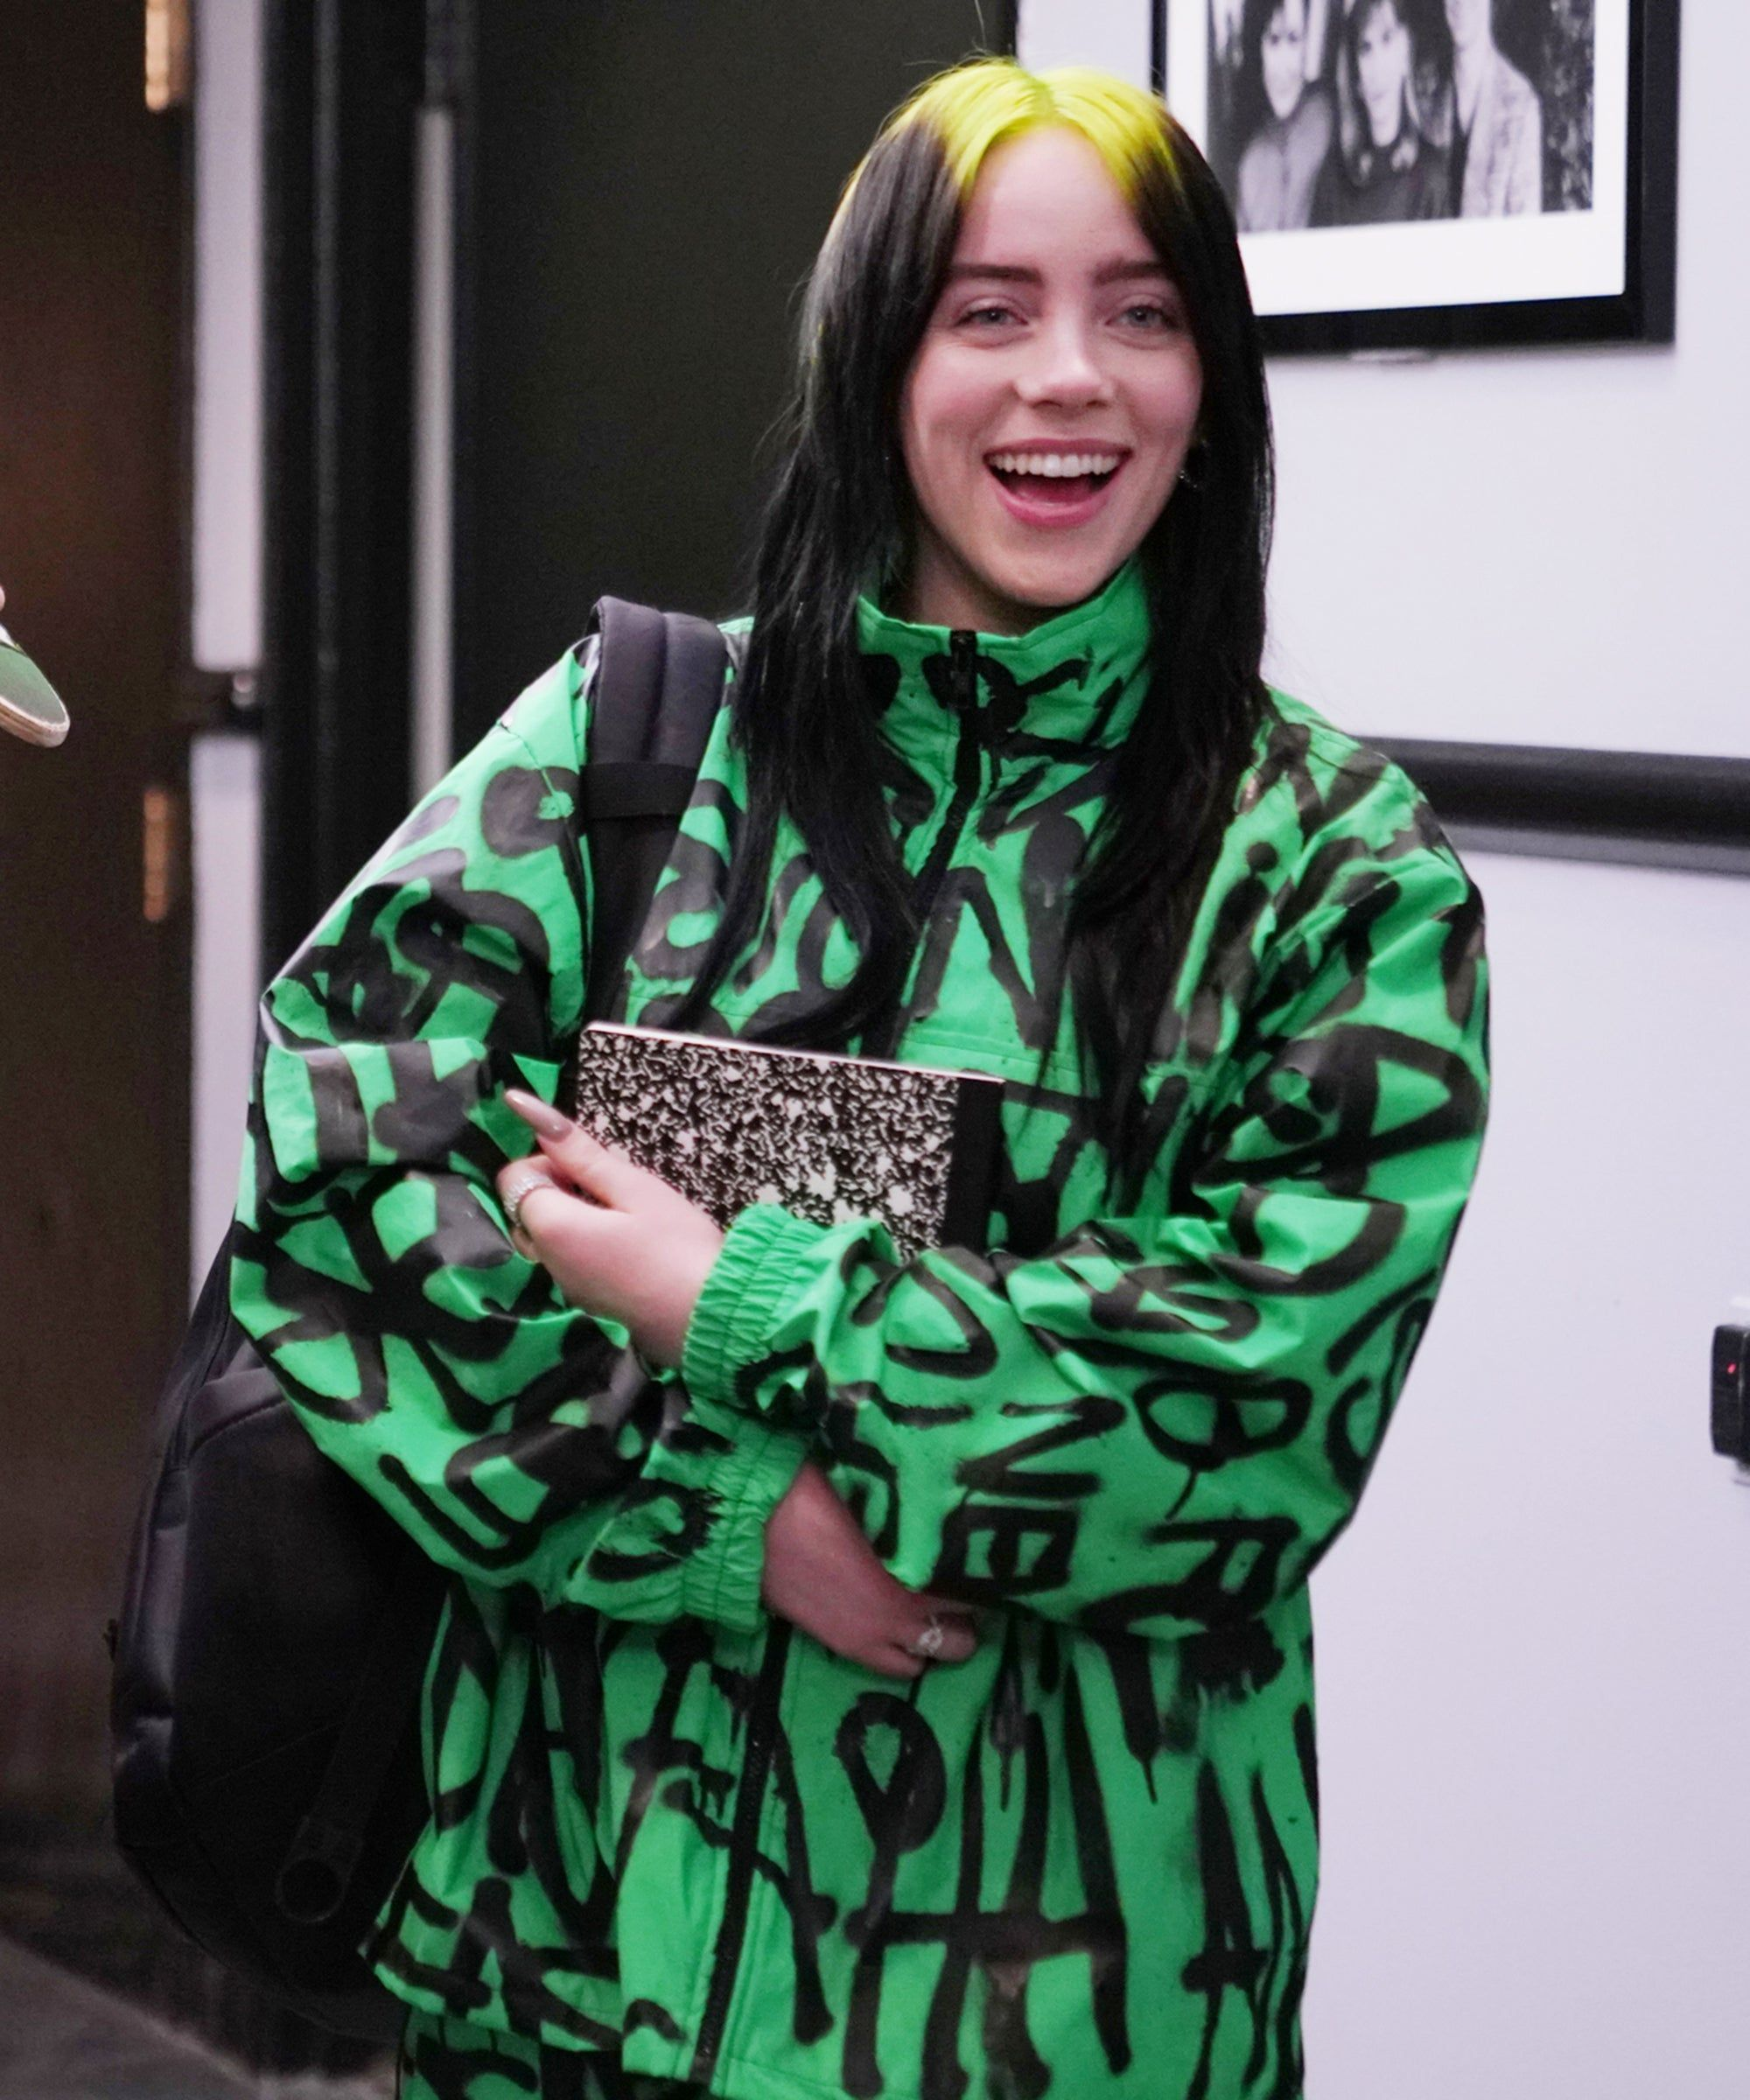 Billie Eilish Is Here To Make The Saturday Night Live Cast Feel So, So Old #saturdaynight Billie Eilish gets schooled by Woody Harrelson in this new SNL promo.